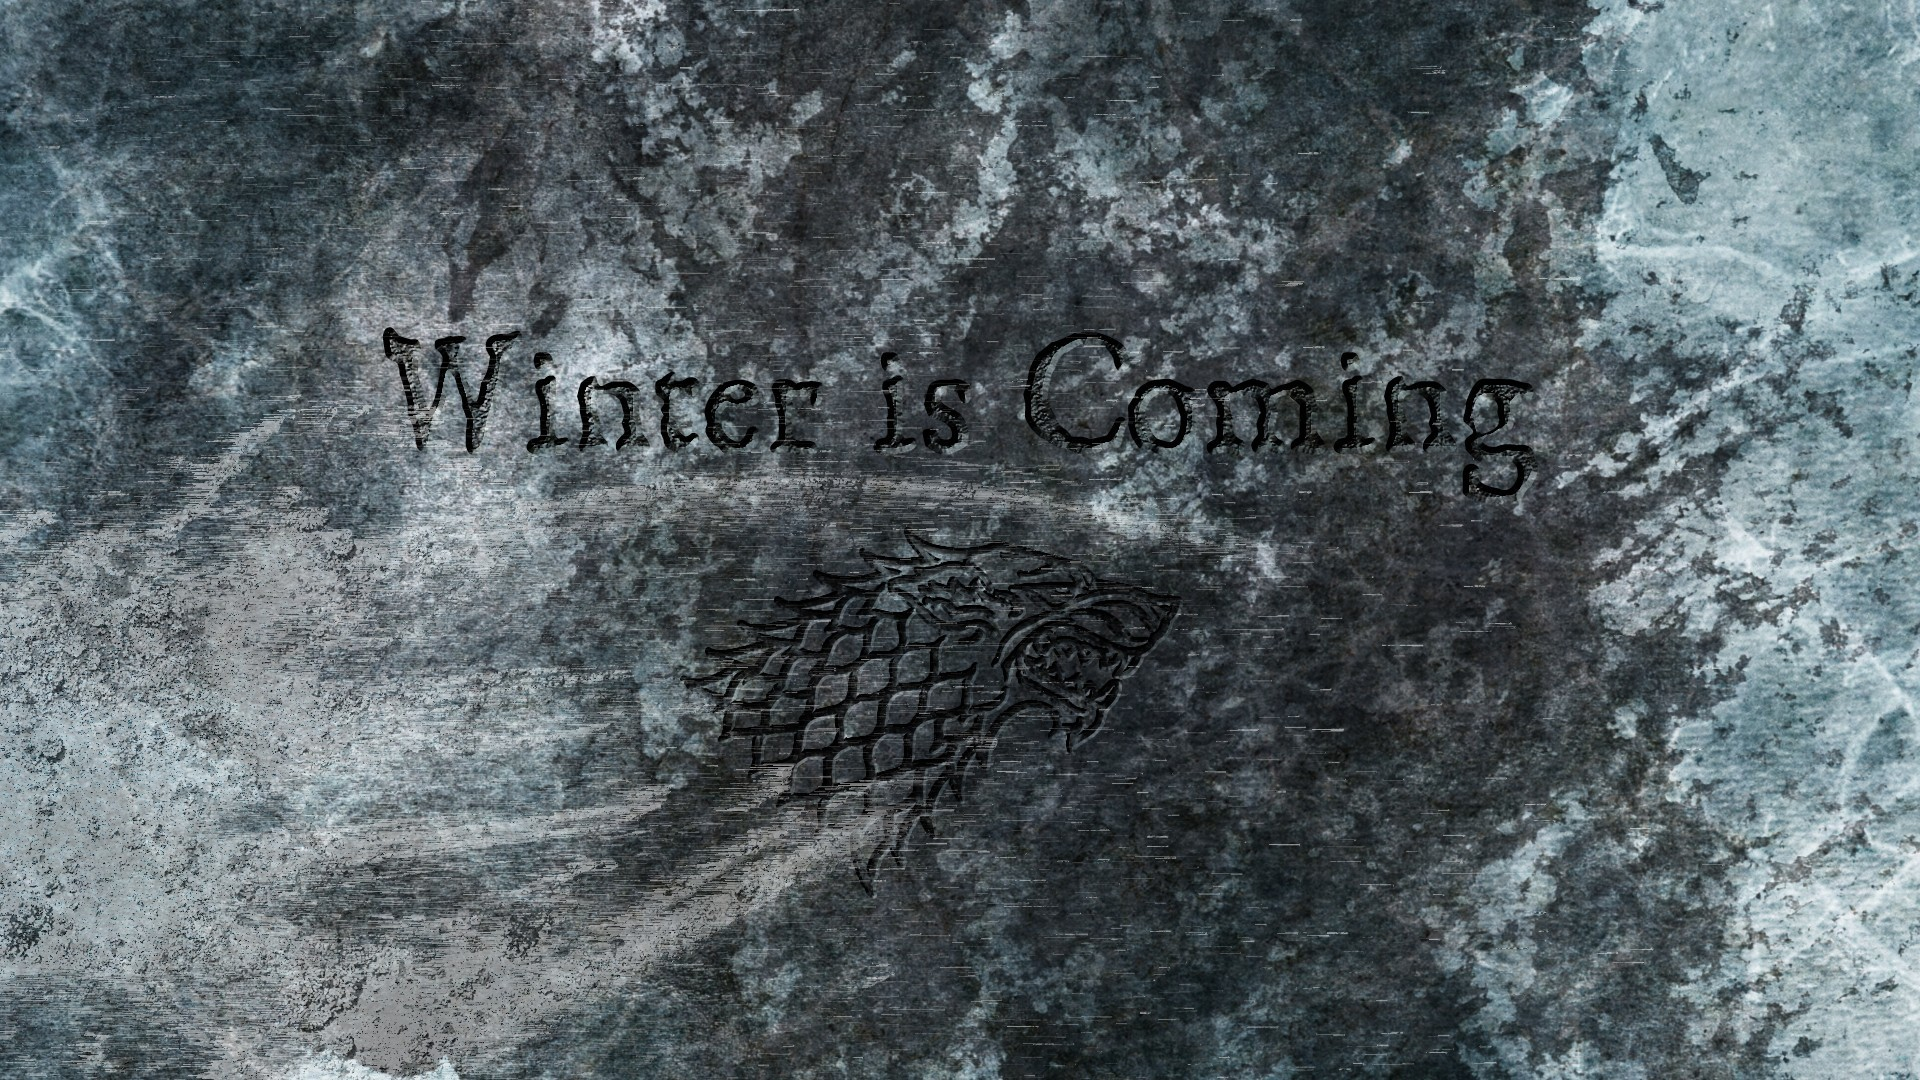 Res: 1920x1080, game of thrones house stark direwolf winter is coming sigils wallpaper and  background